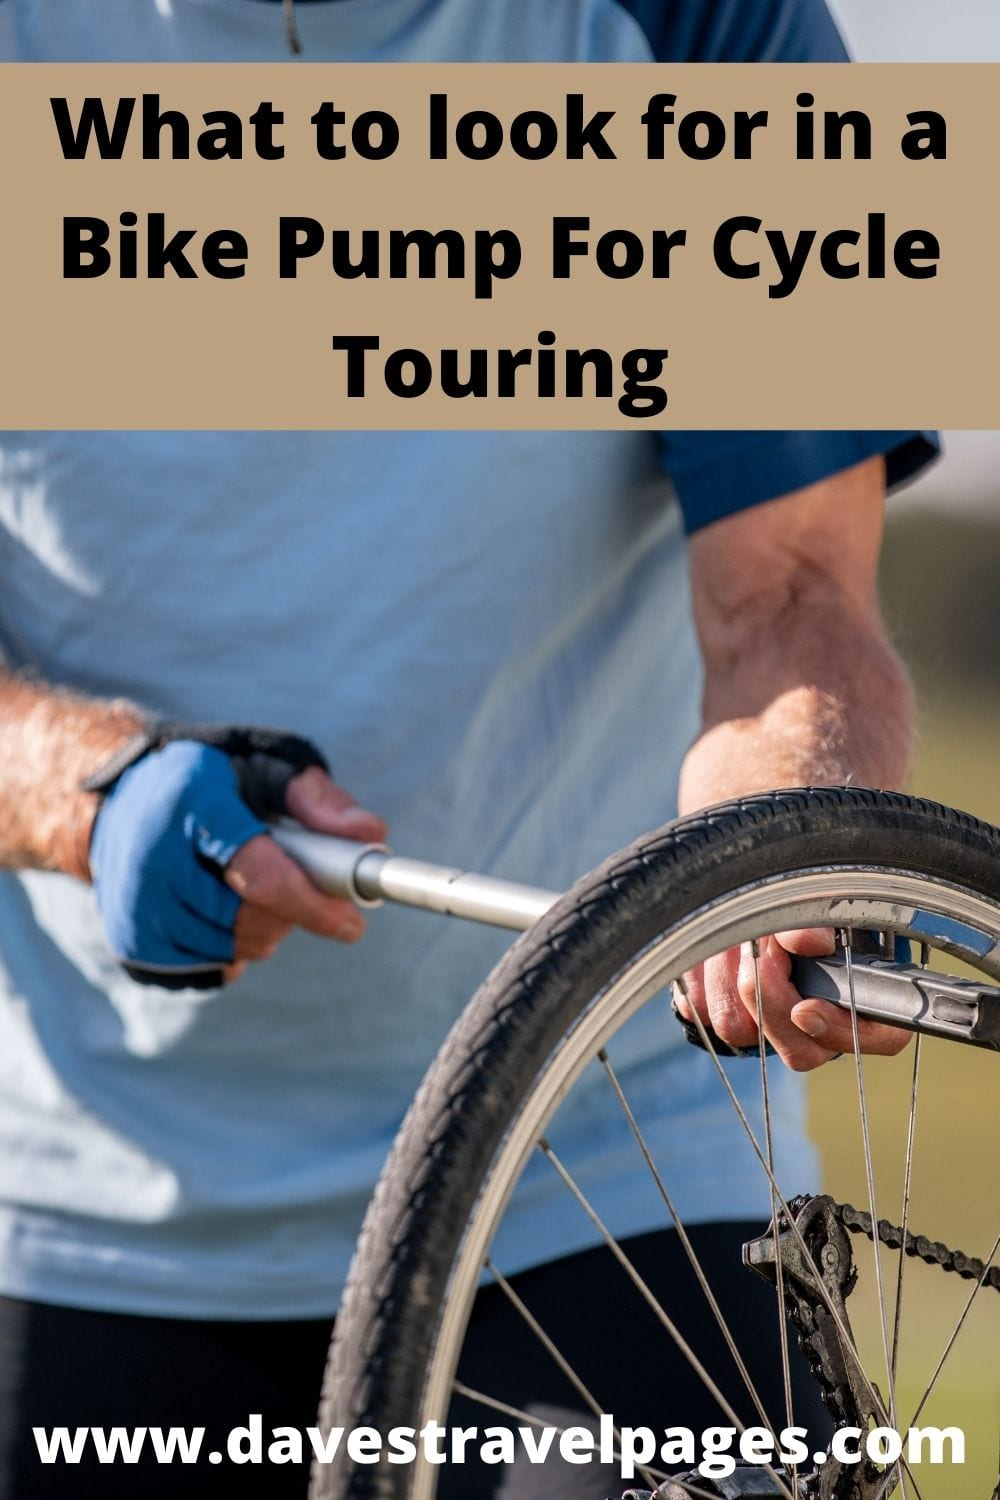 How to choose a bike pump for bicycle touring